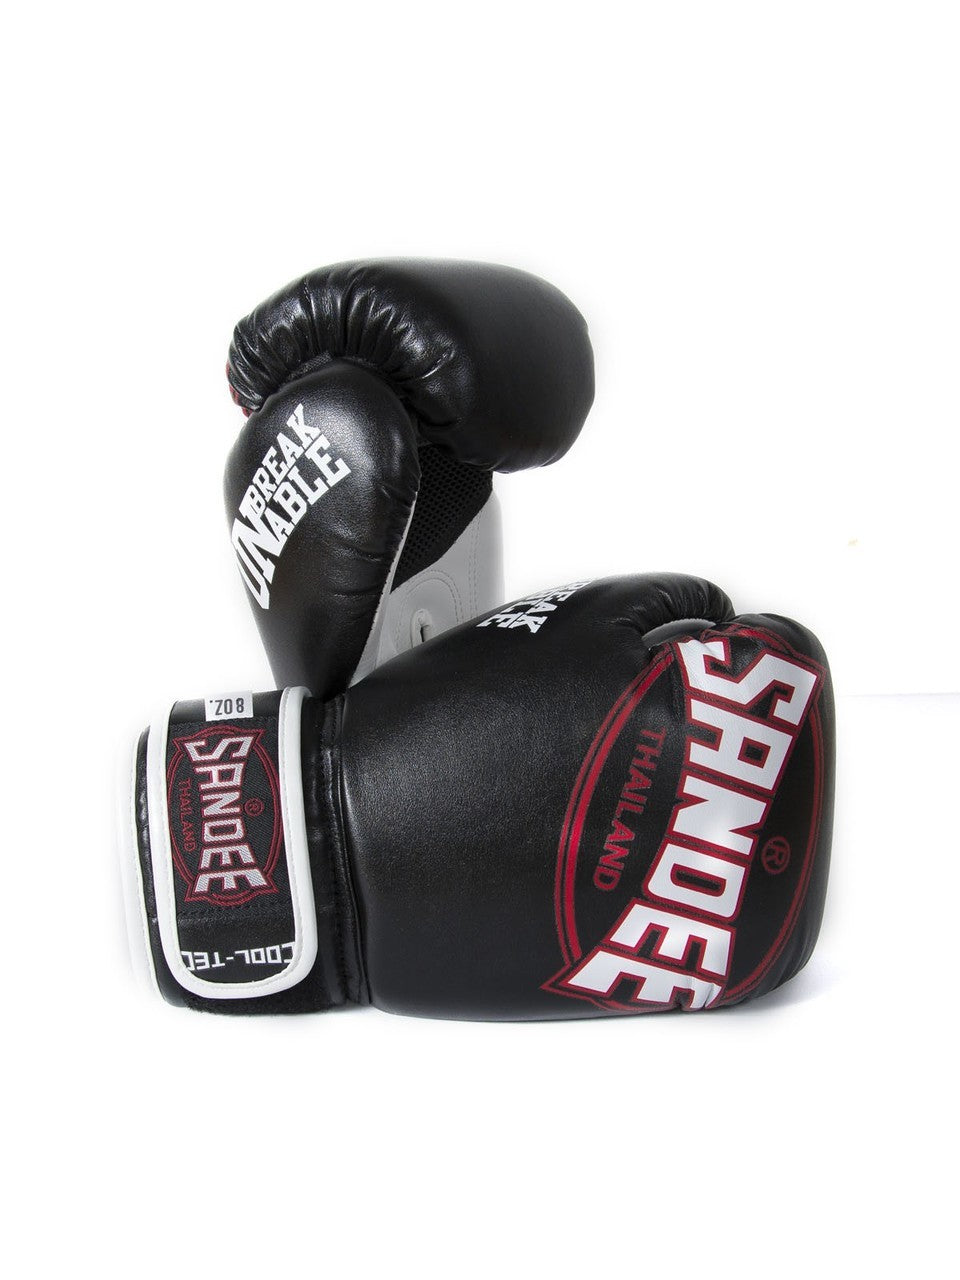 Image of Sandee Cool Tec Black Red Leather Boxing Gloves